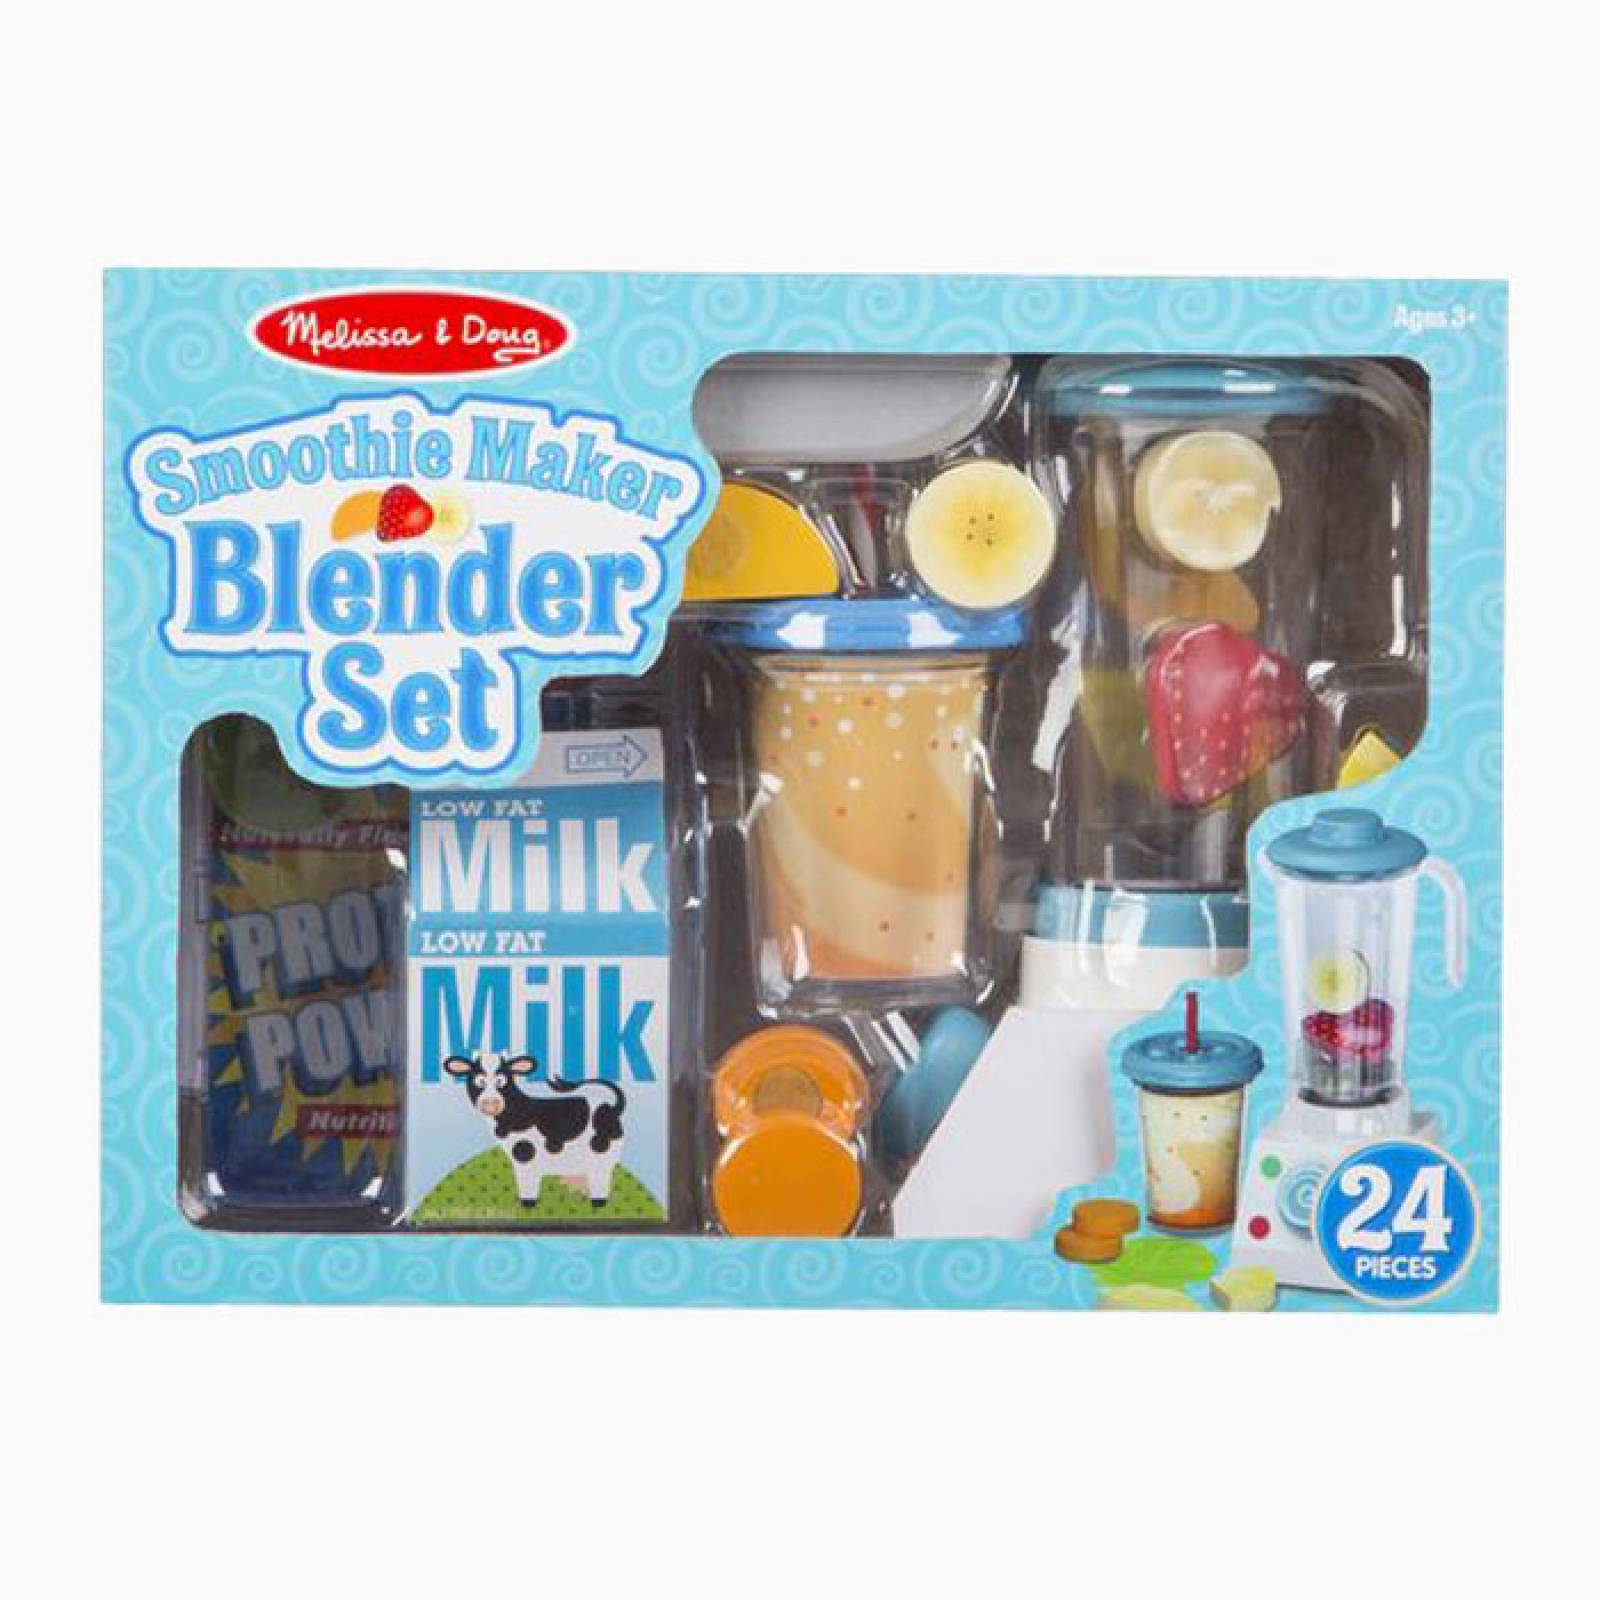 Toy Smoothie Maker Set By Melissa + Doug 3+